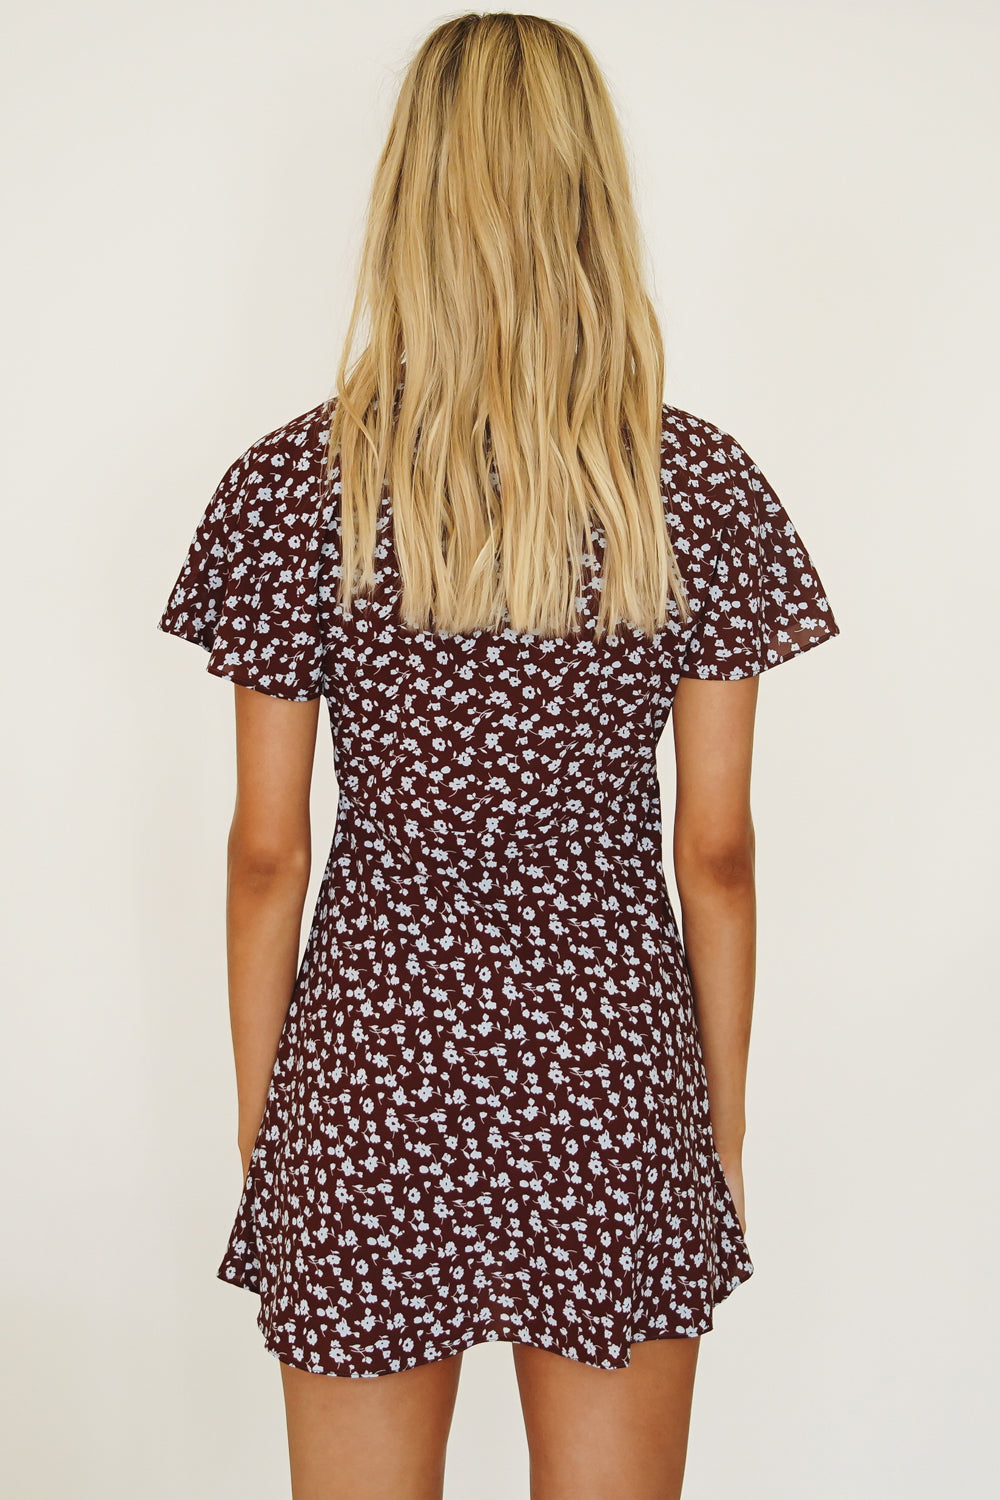 VRG GRL Edge Of Romance Floral Mini Dress // Chocolate